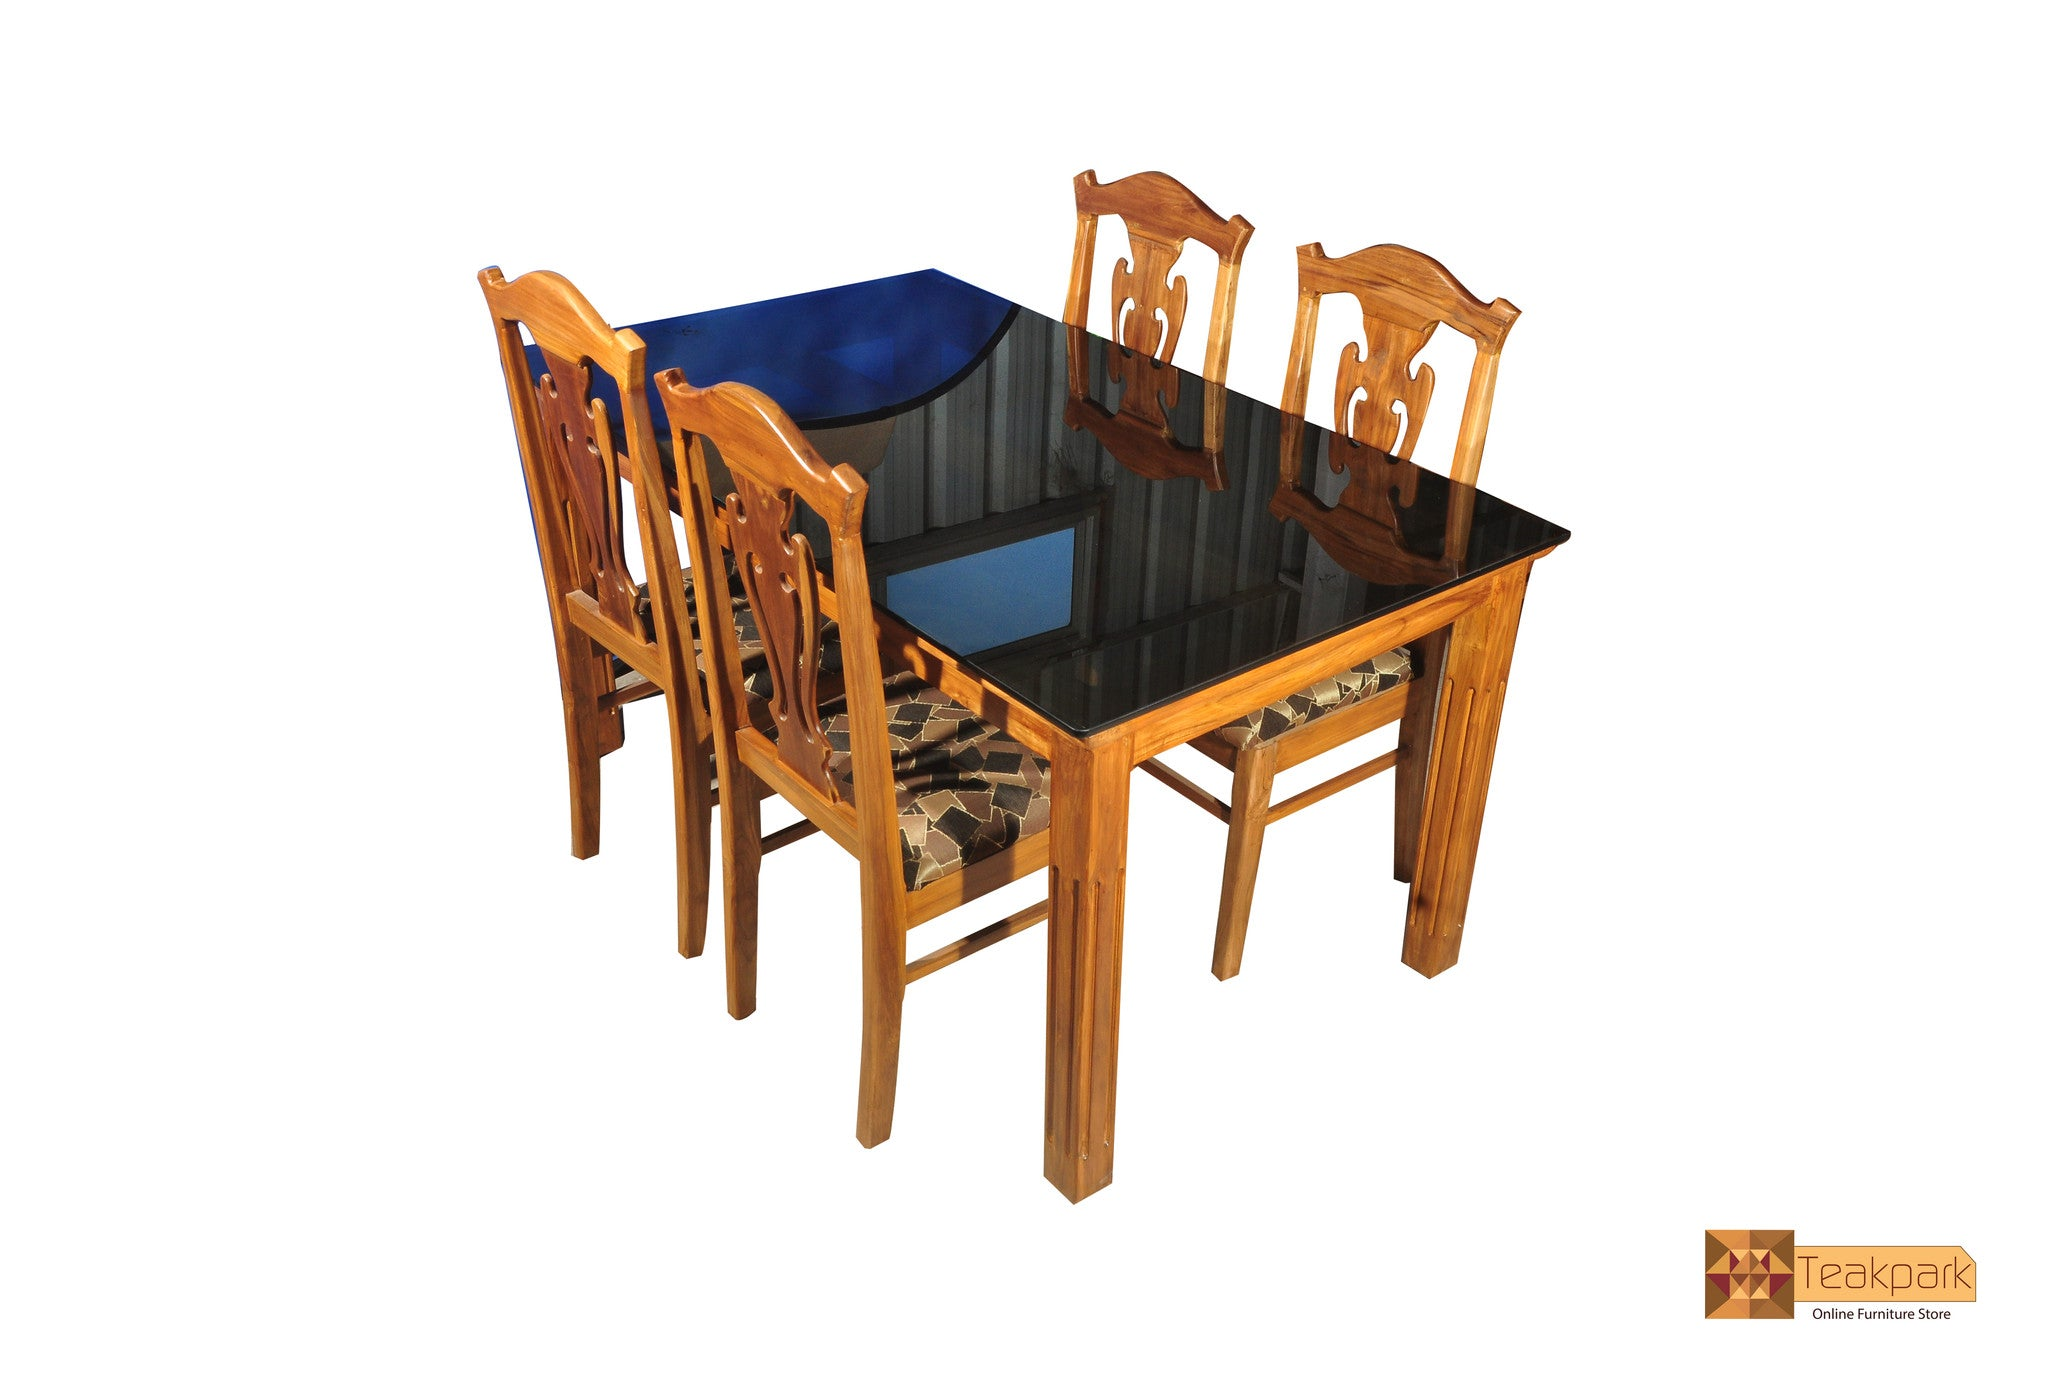 Miraculous Periyar Teak Wood Dining Set Glass Top Table With Chairs Download Free Architecture Designs Scobabritishbridgeorg